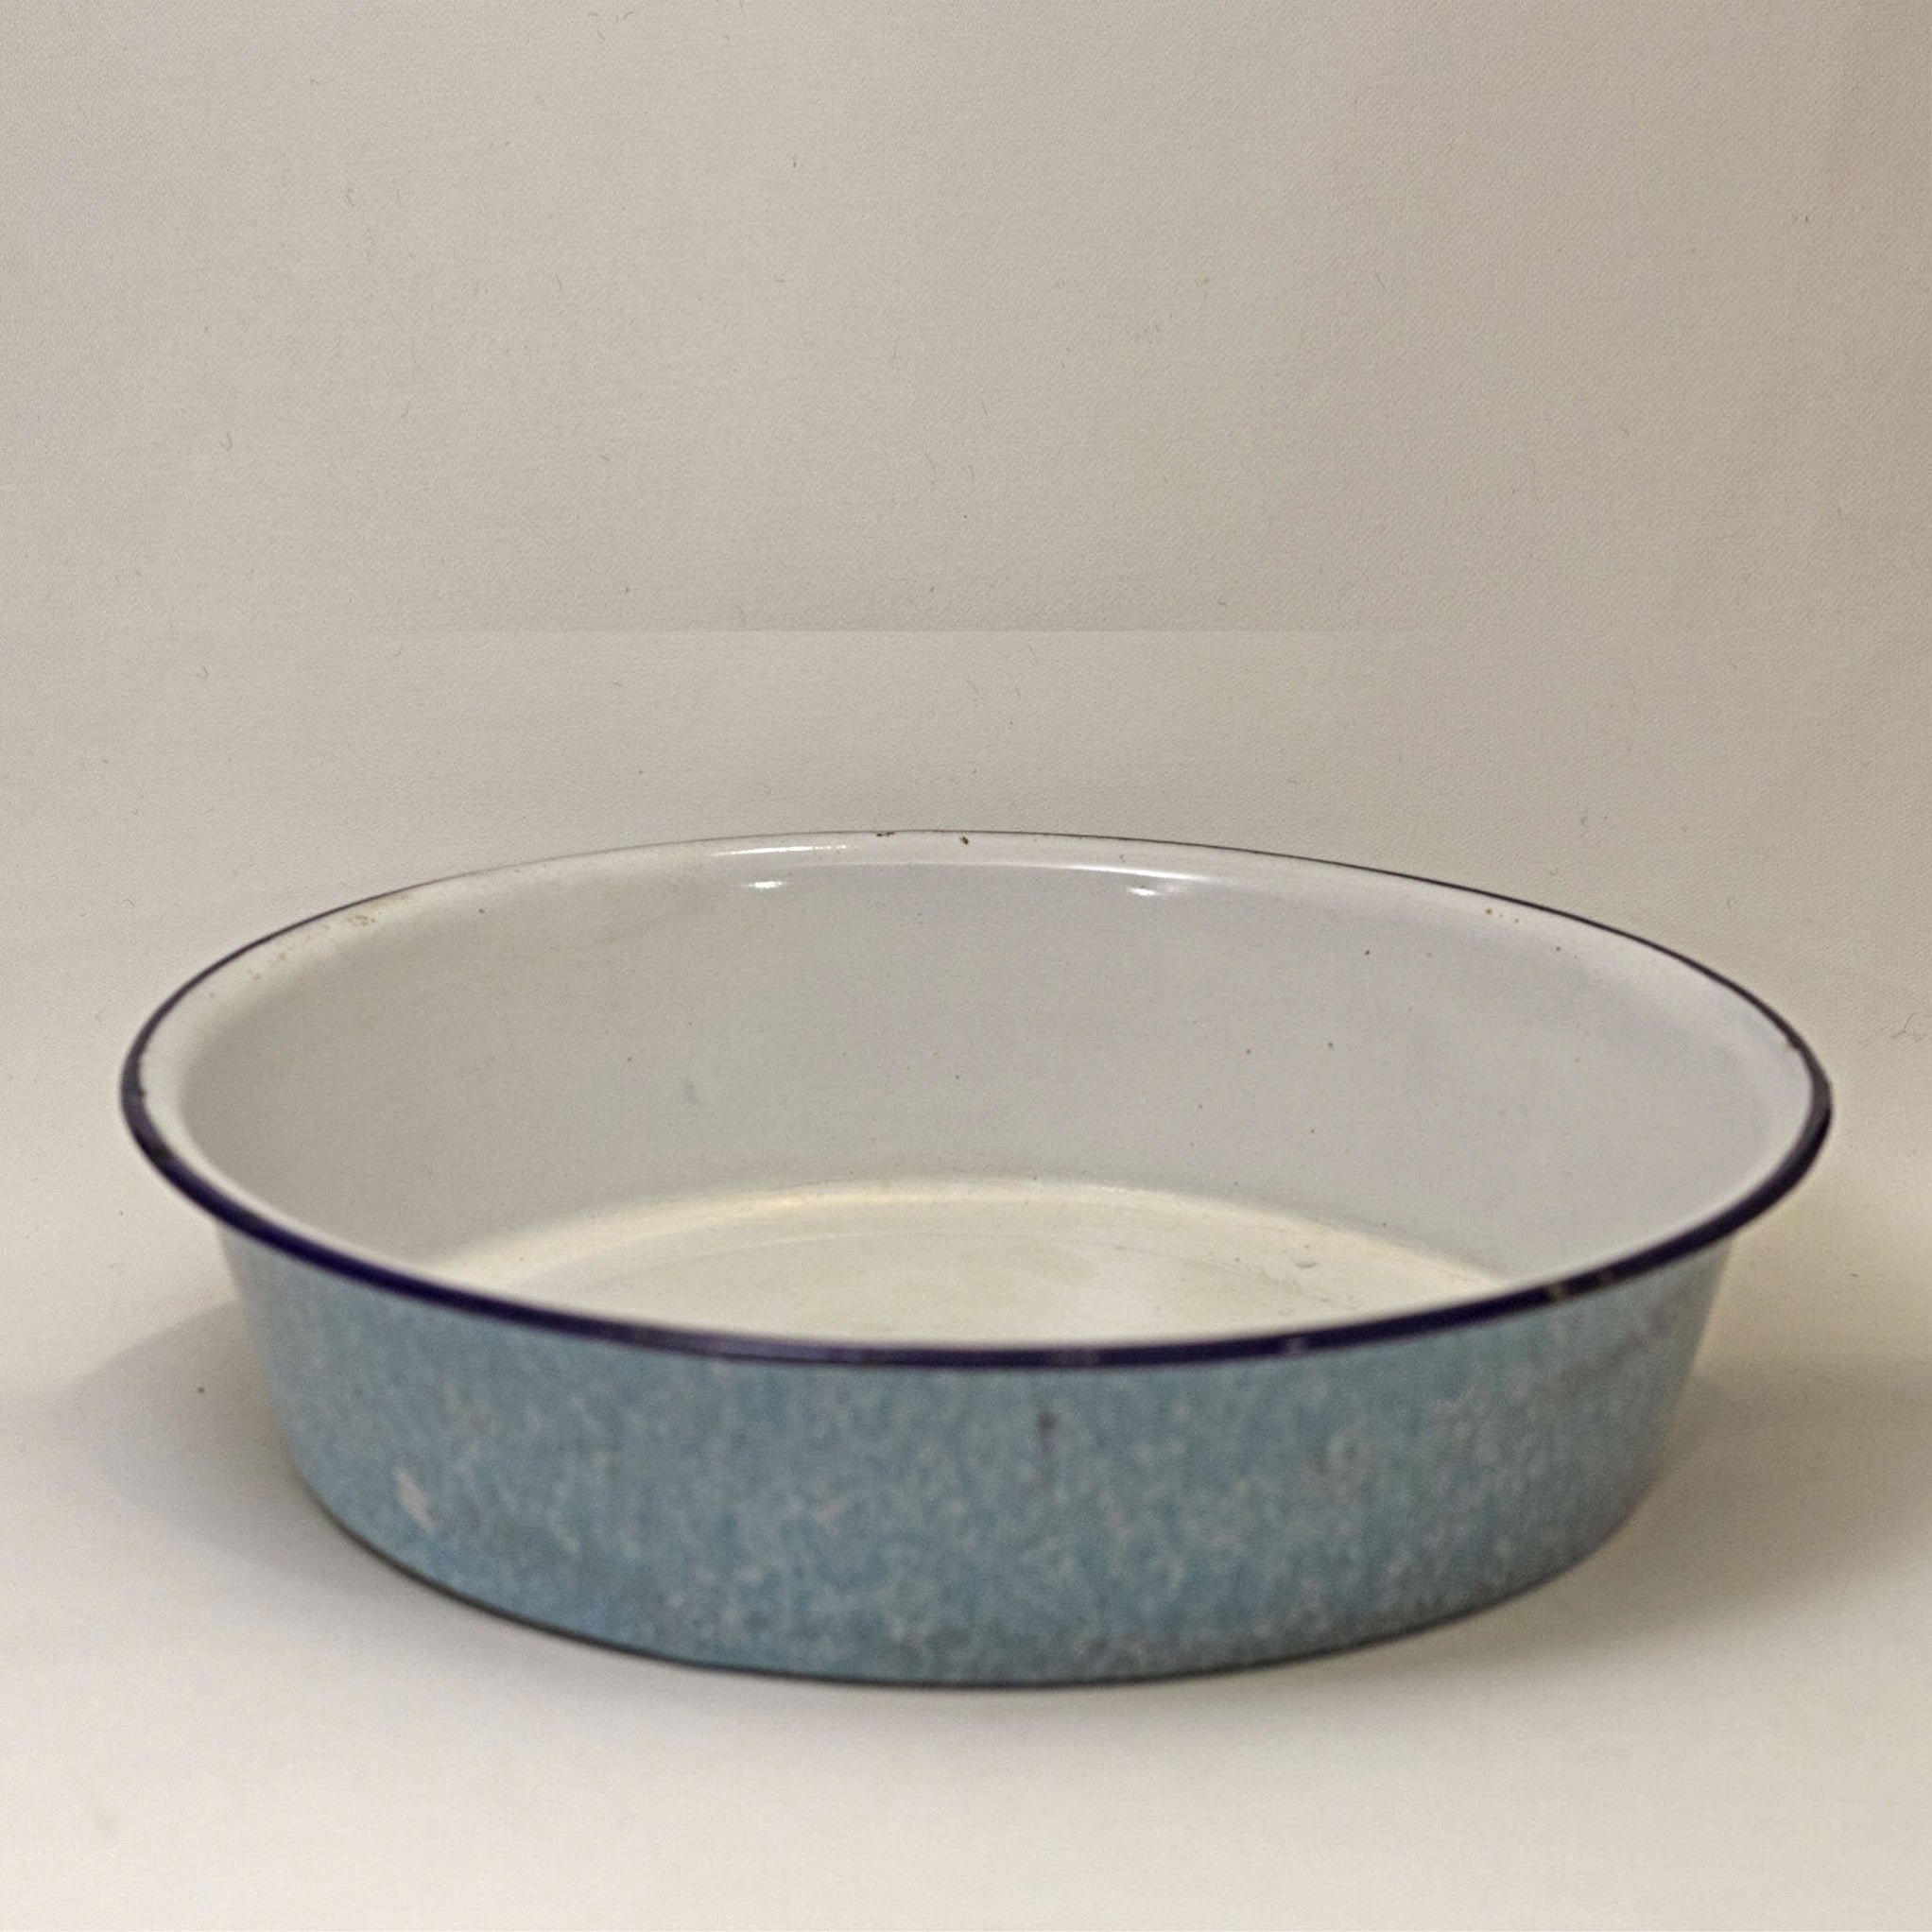 GRANITE WARE 8-INCH ROUND CAKE PAN Light Blue Gray Mottled with White Interior